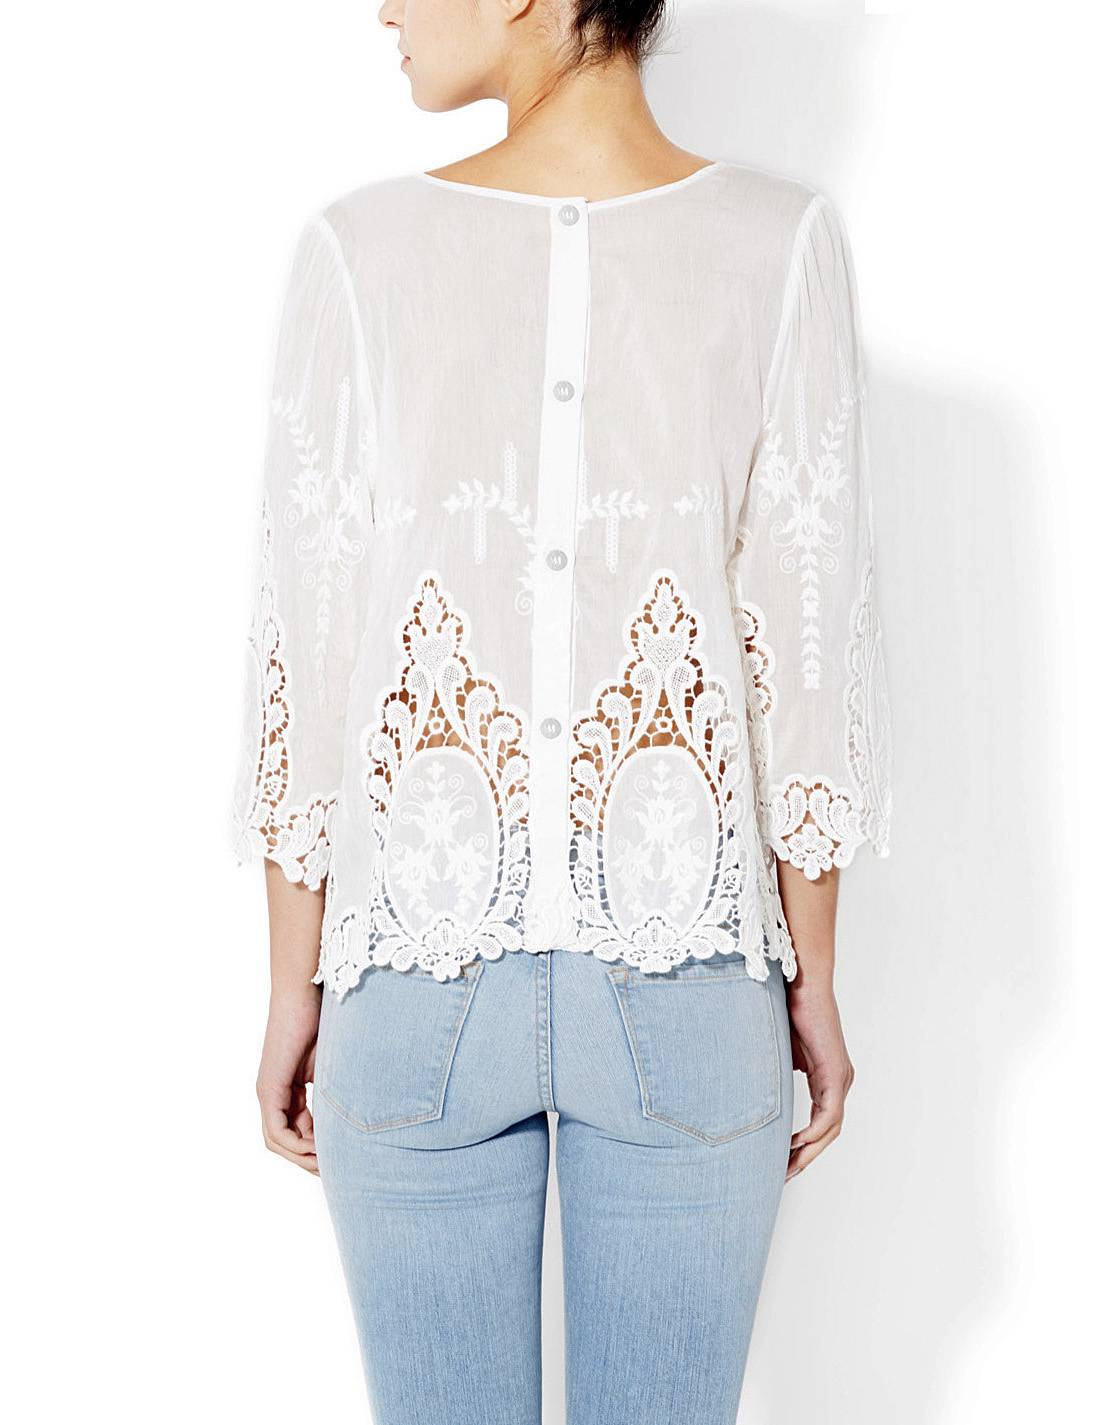 Cynthia Rowley White 100 Cotton Vita Dolce Embroidered